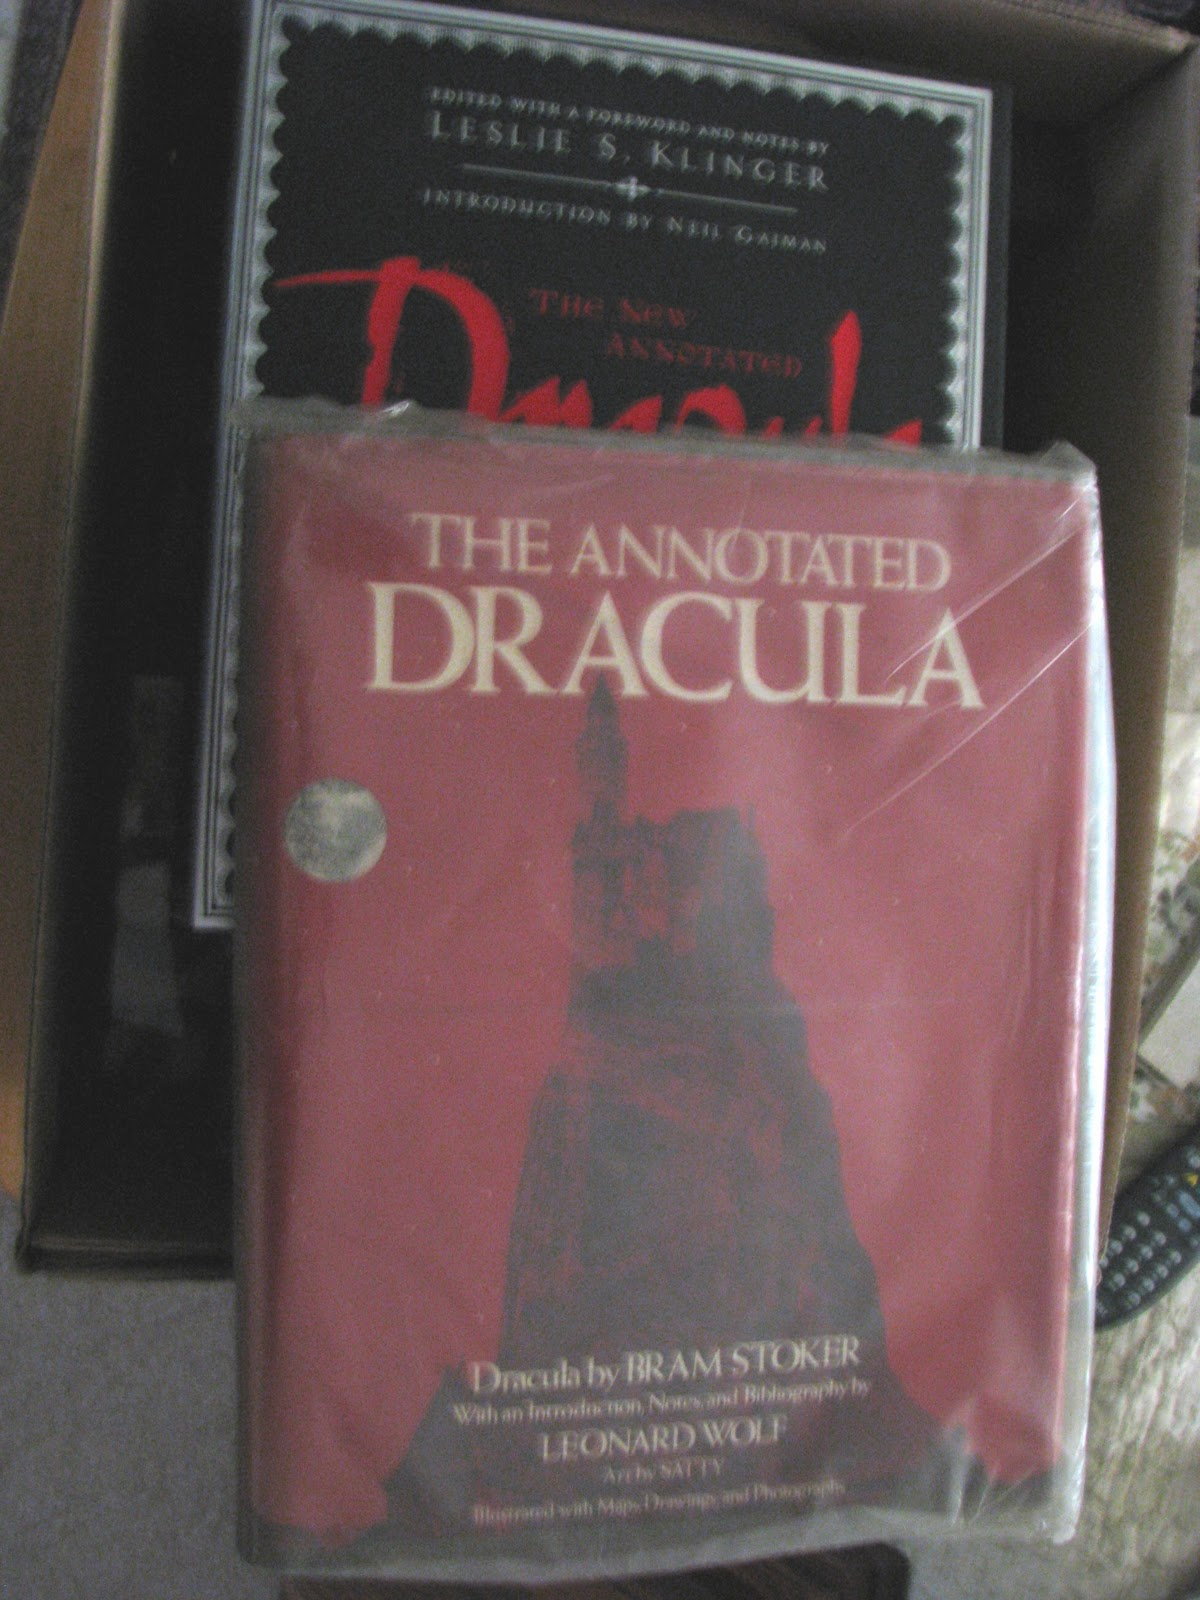 thomas burchfield a curious man 2011 thomas burchfield s contemporary dracula novel dragon s ark will be published this spring by ambler house publishing other essays and postings can also be